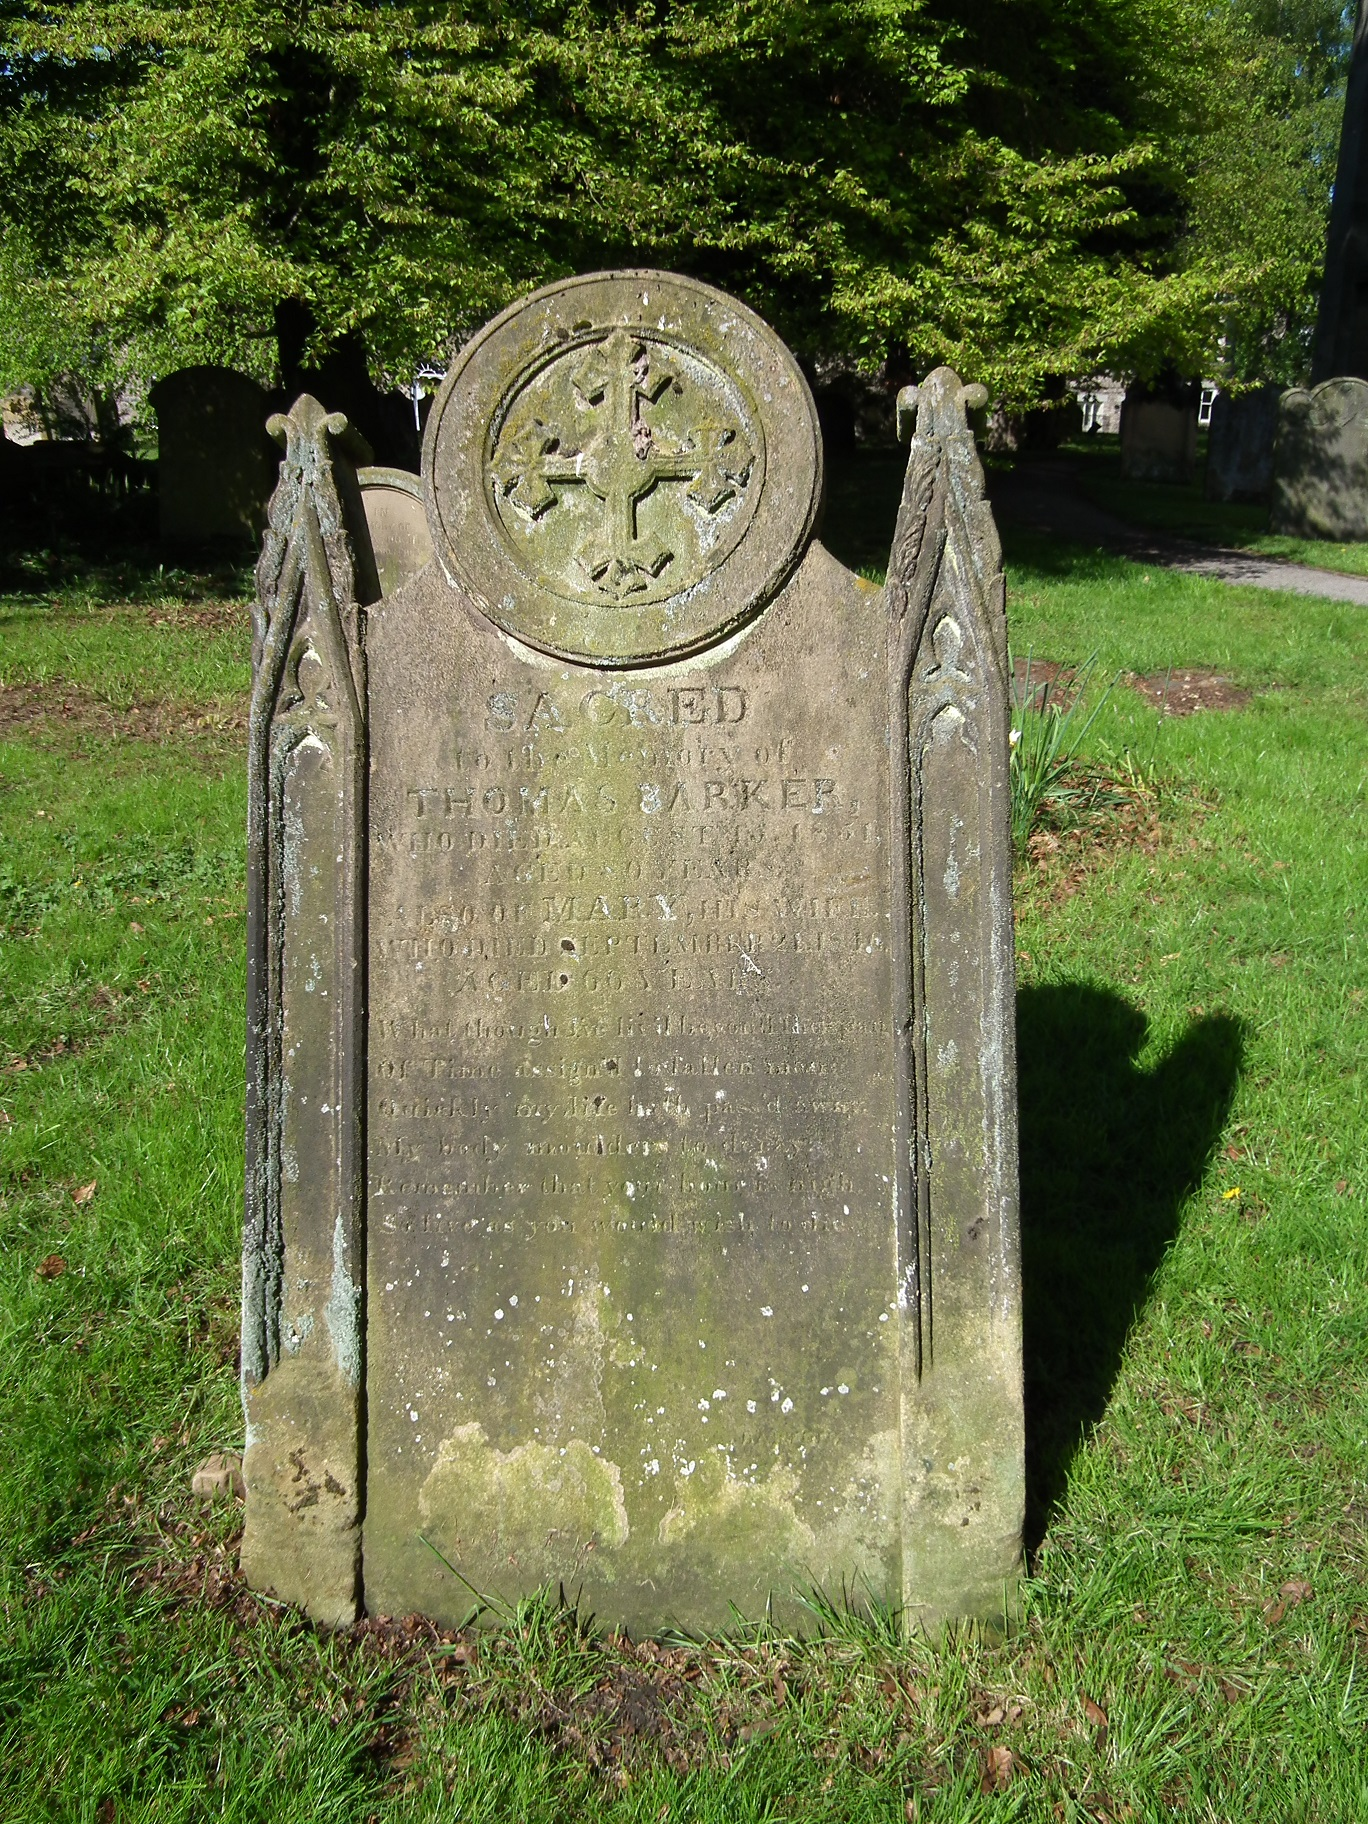 A headstone from Helmsley with a cross motif